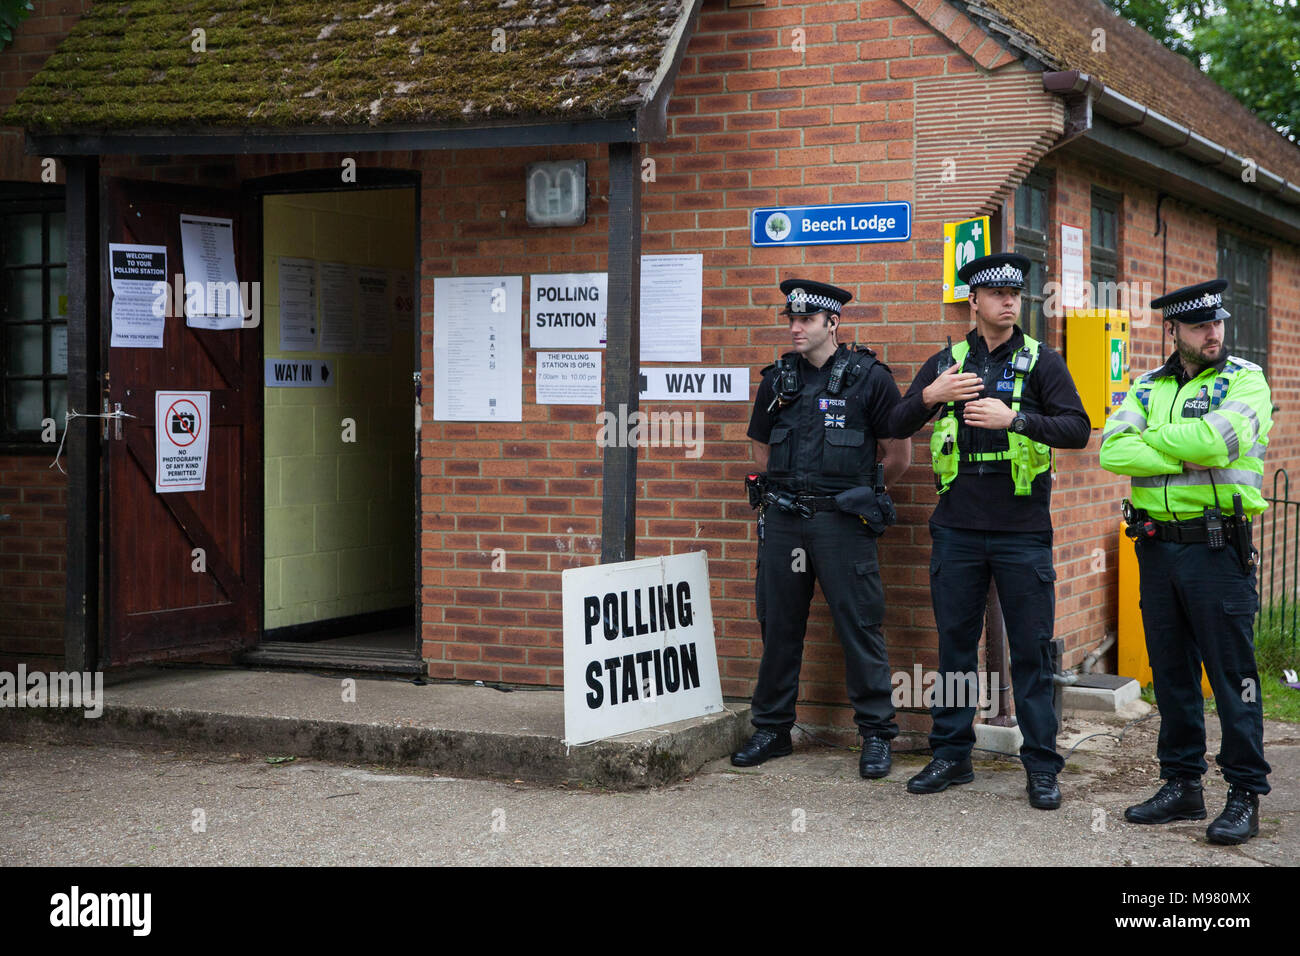 Sonning, UK. 8th June, 2017. Police officers on duty outside Prime Minister Theresa May's local polling station during the general election vote. - Stock Image